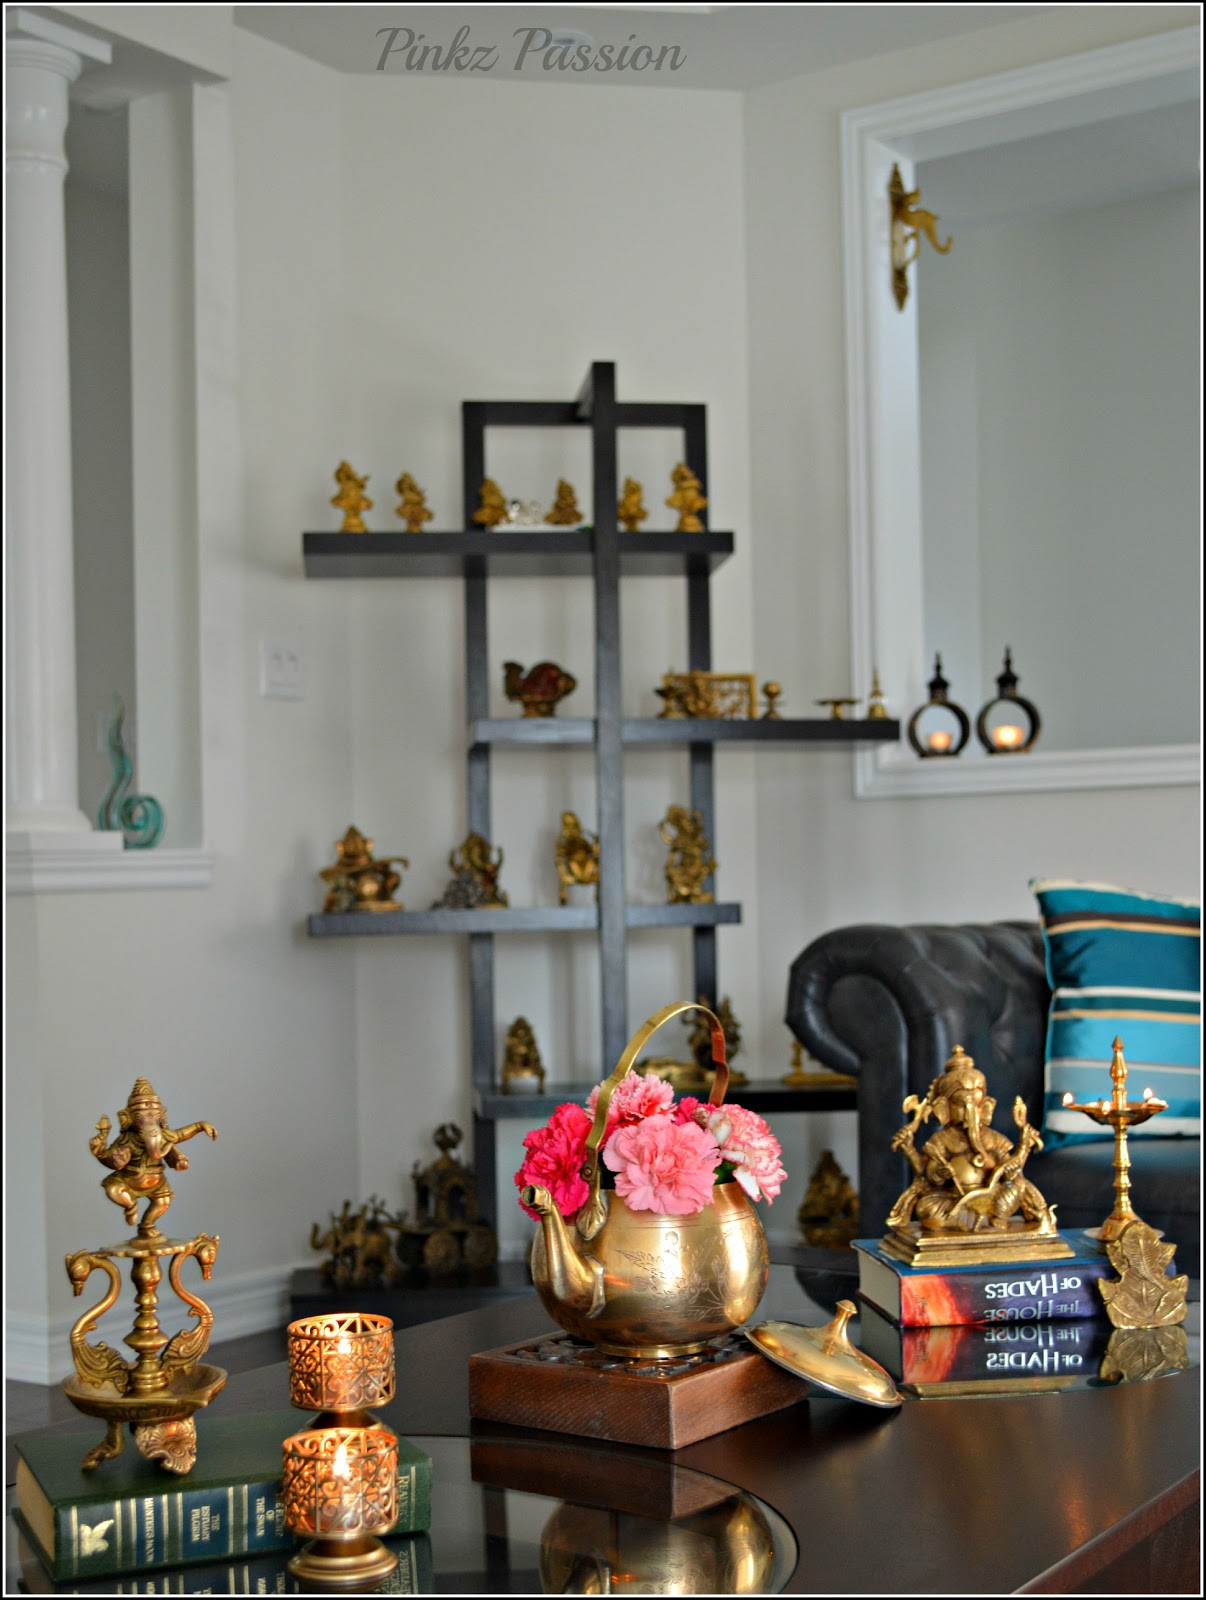 Pinkz passion passion of collection for Drawing room decoration ideas india